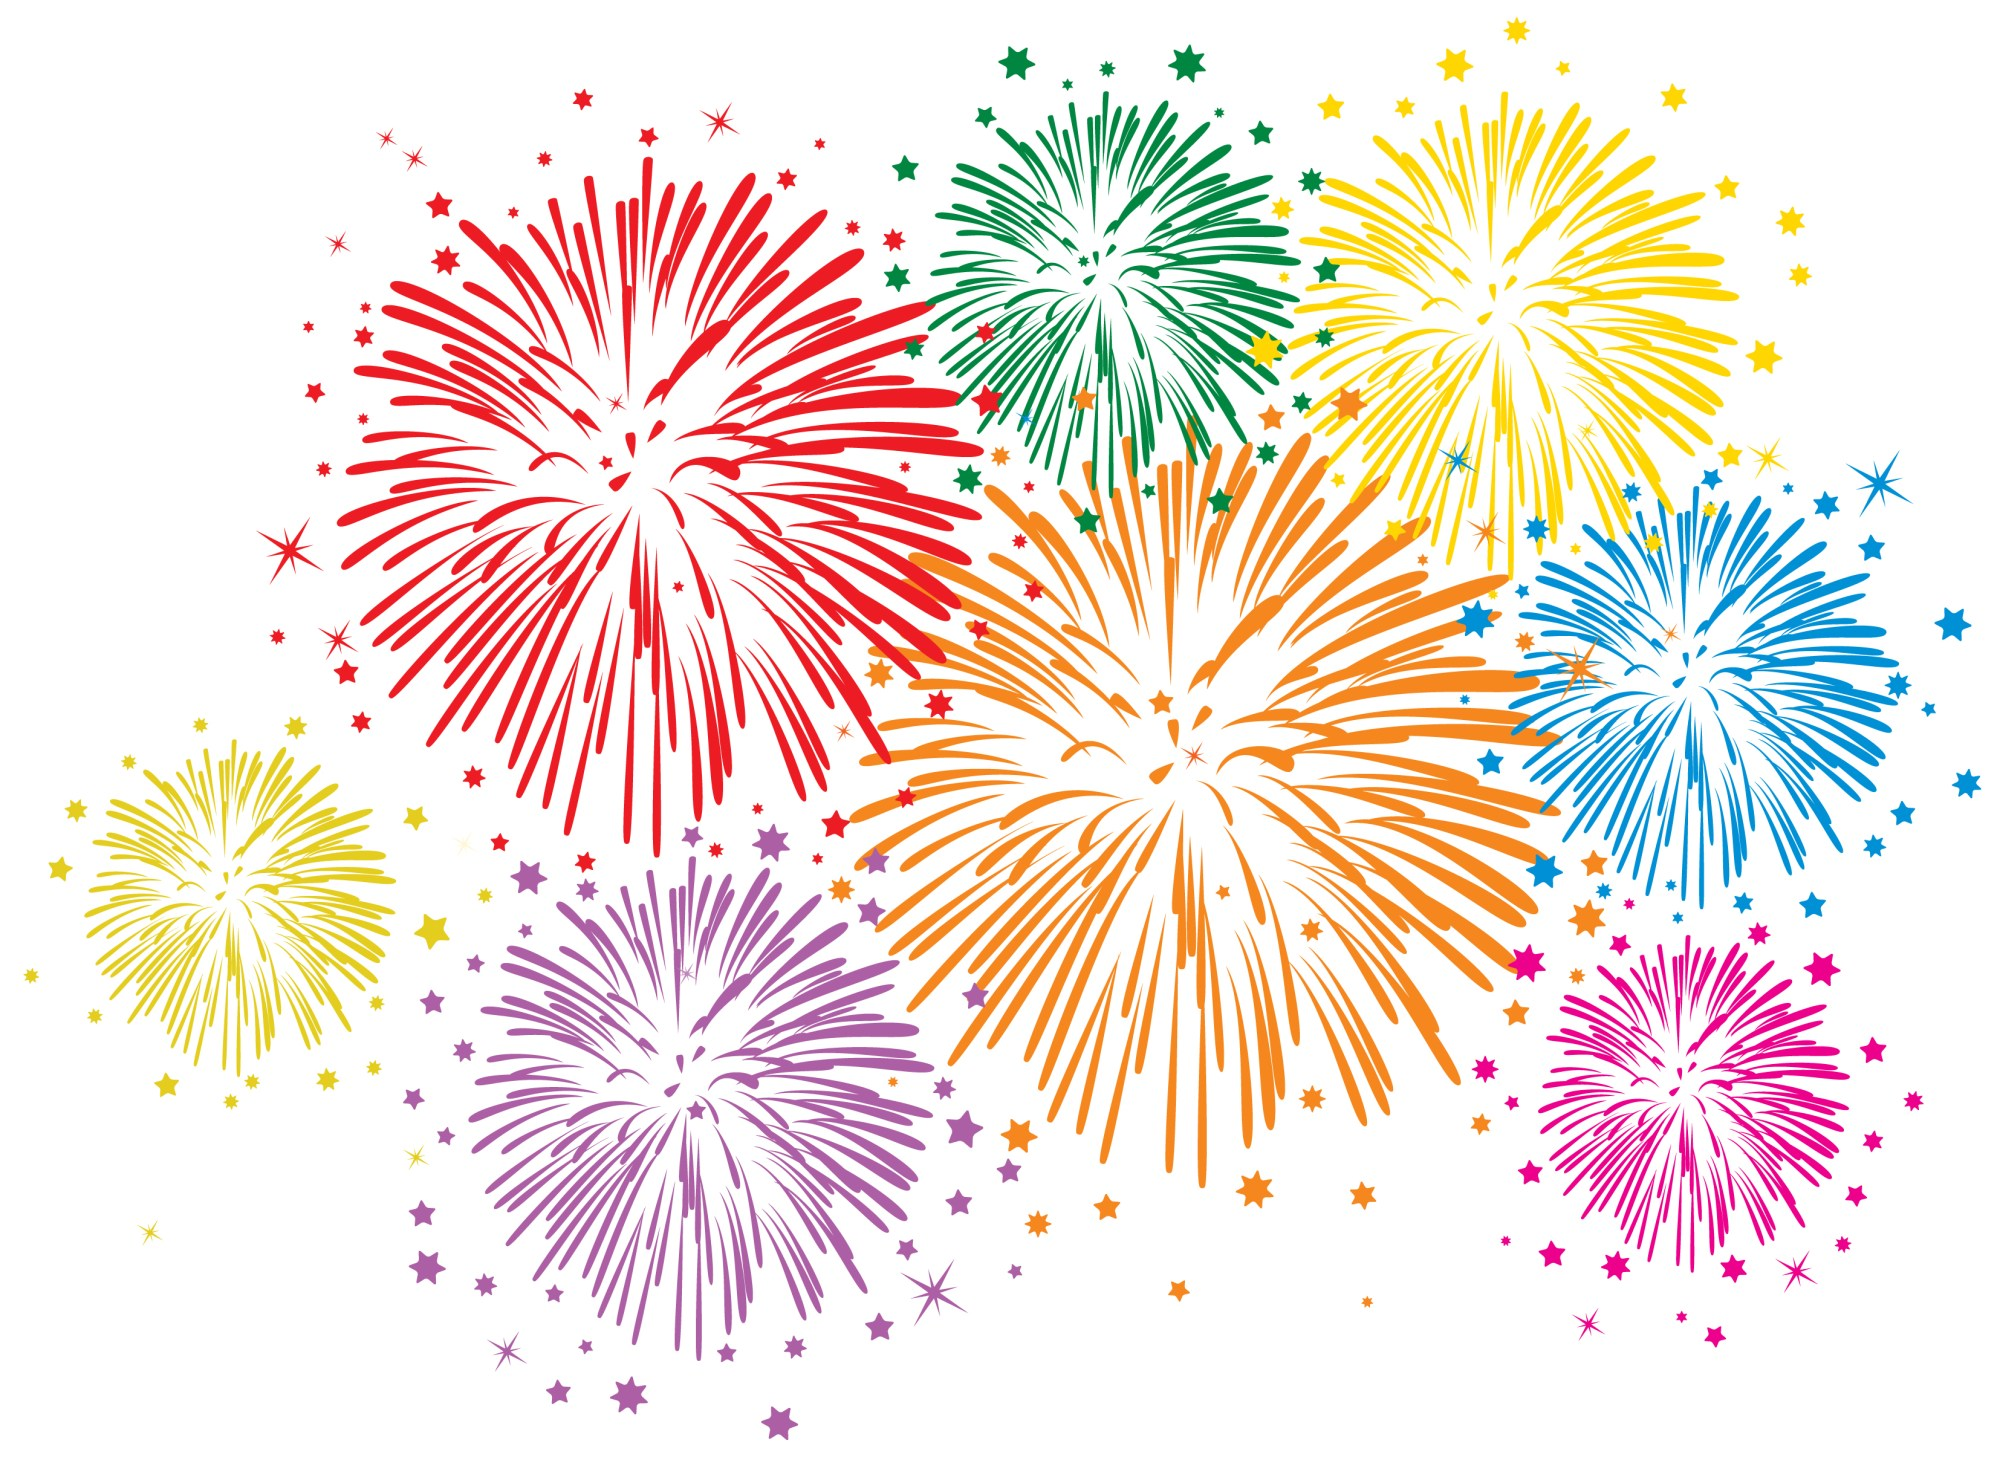 hight resolution of drawn fireworks animated 3 animated png hd fireworks